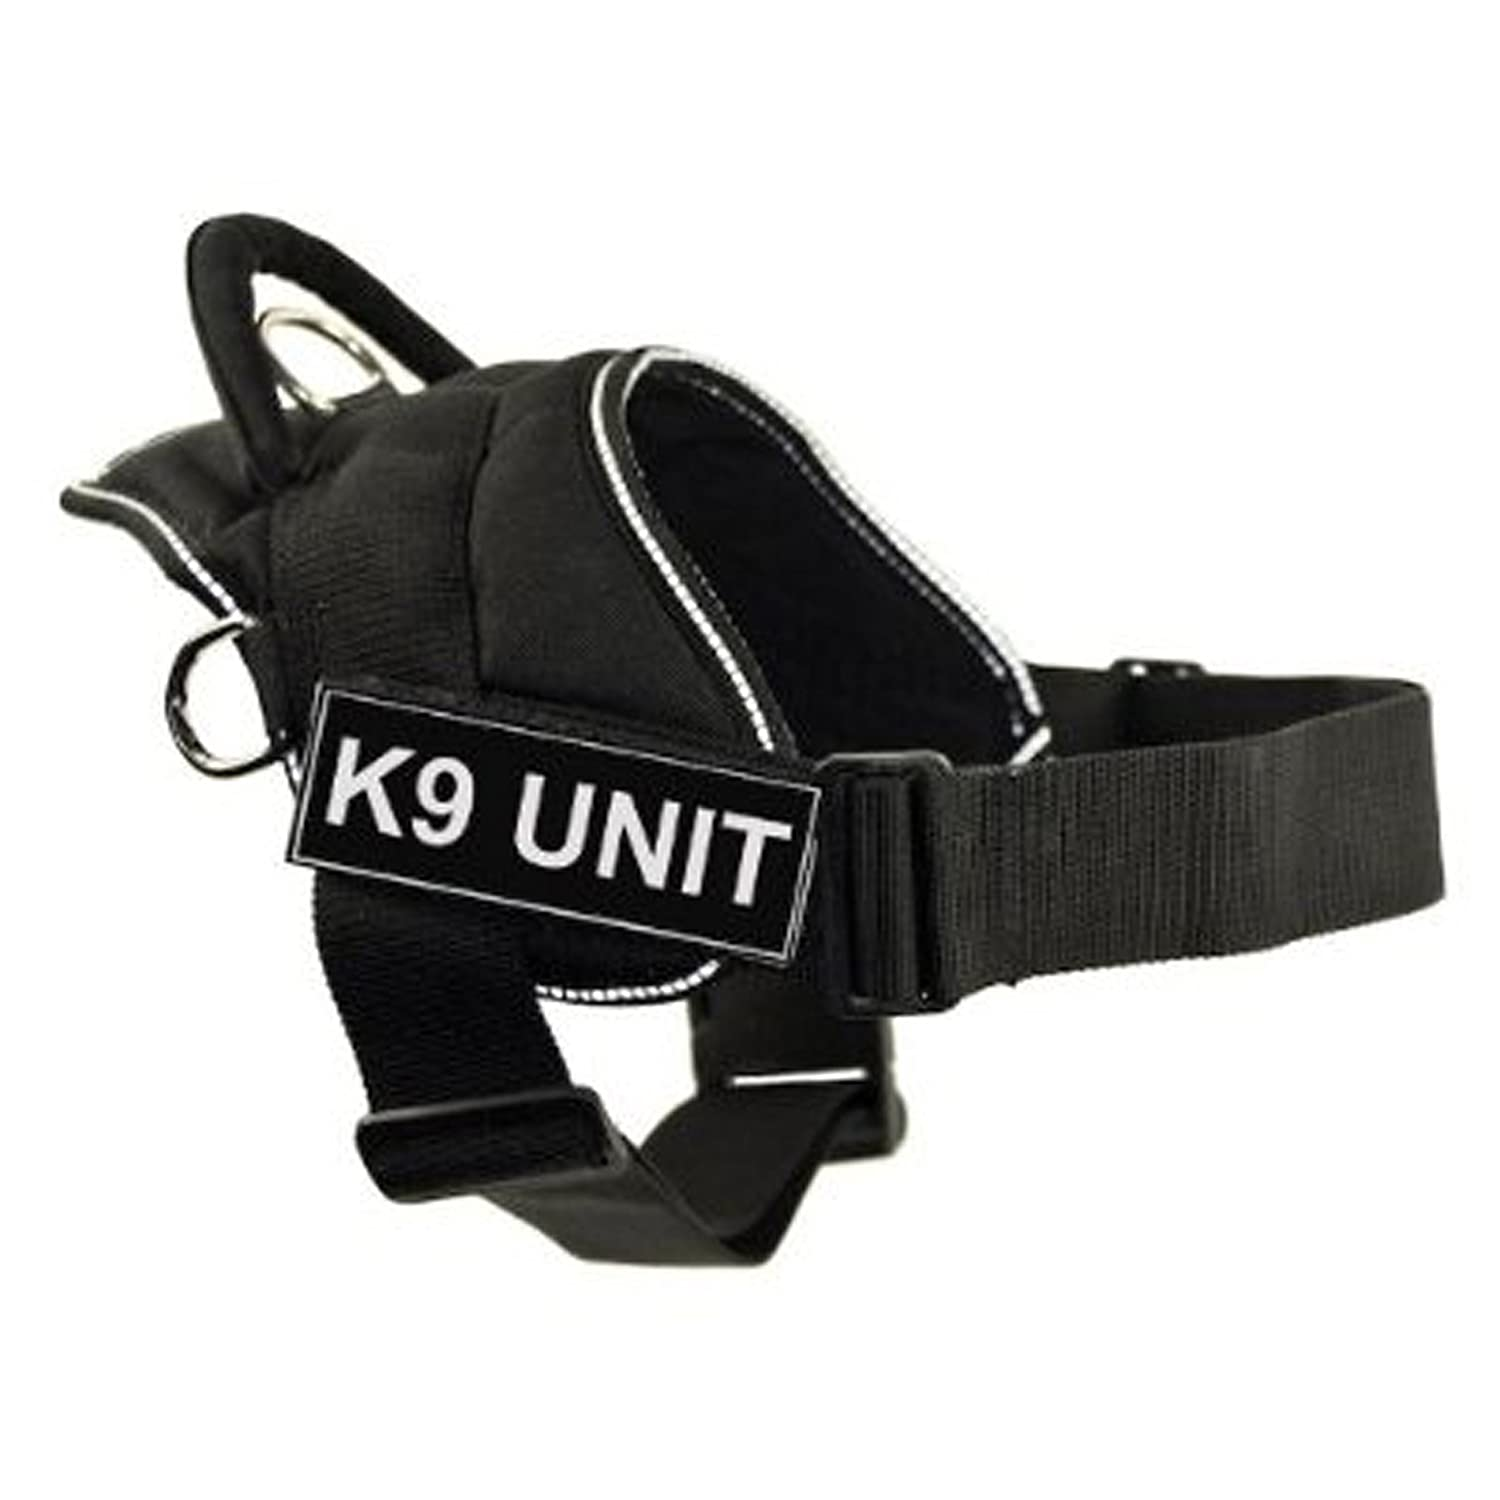 Dean & Tyler DT Fun Works Harness, K9 Unit, Black With Reflective Trim, X-Small Fits Girth Size  20-Inch to 23-Inch